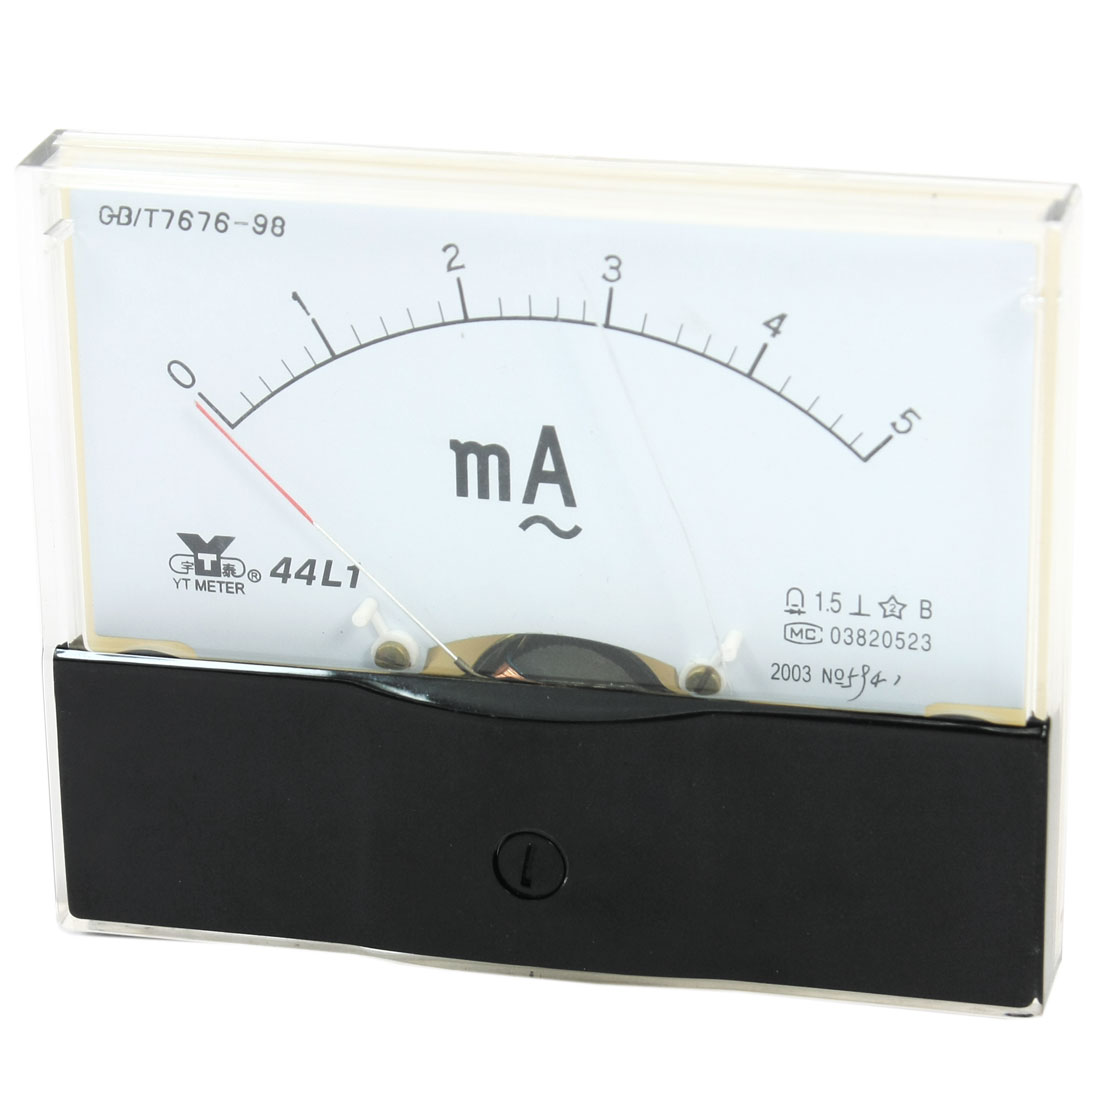 Measurement Tool Panel Mount Analog Ammeter Gauge AC 0 - 5mA Measuring Range 44L1